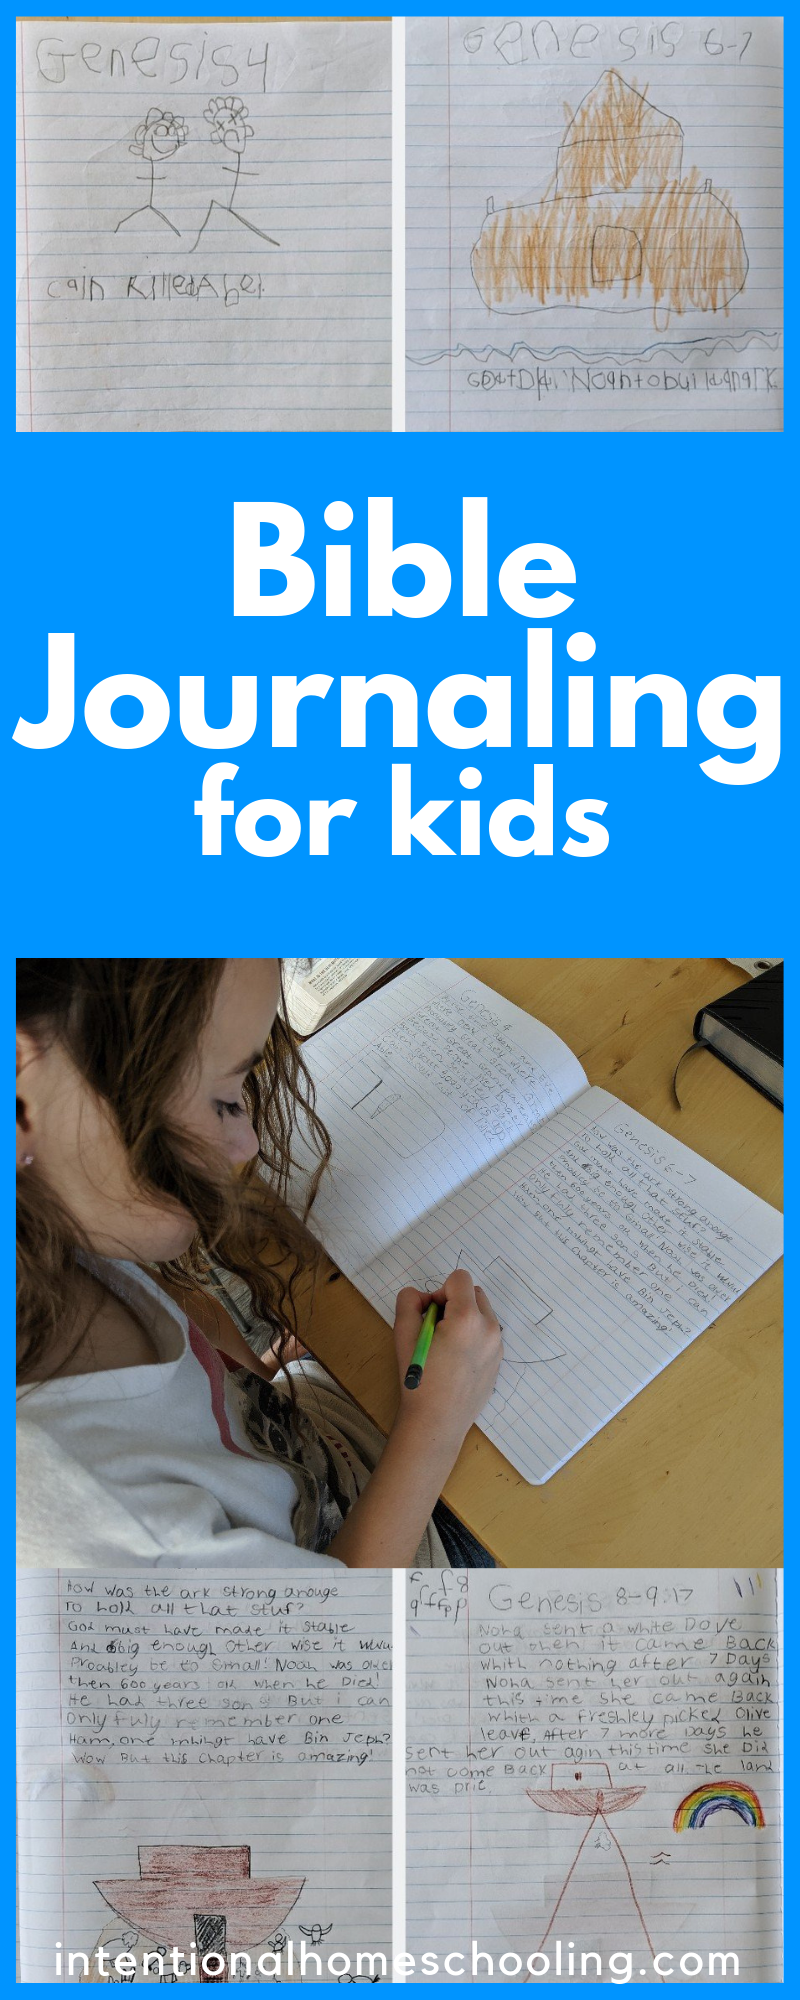 How we Bible Journal with Kids